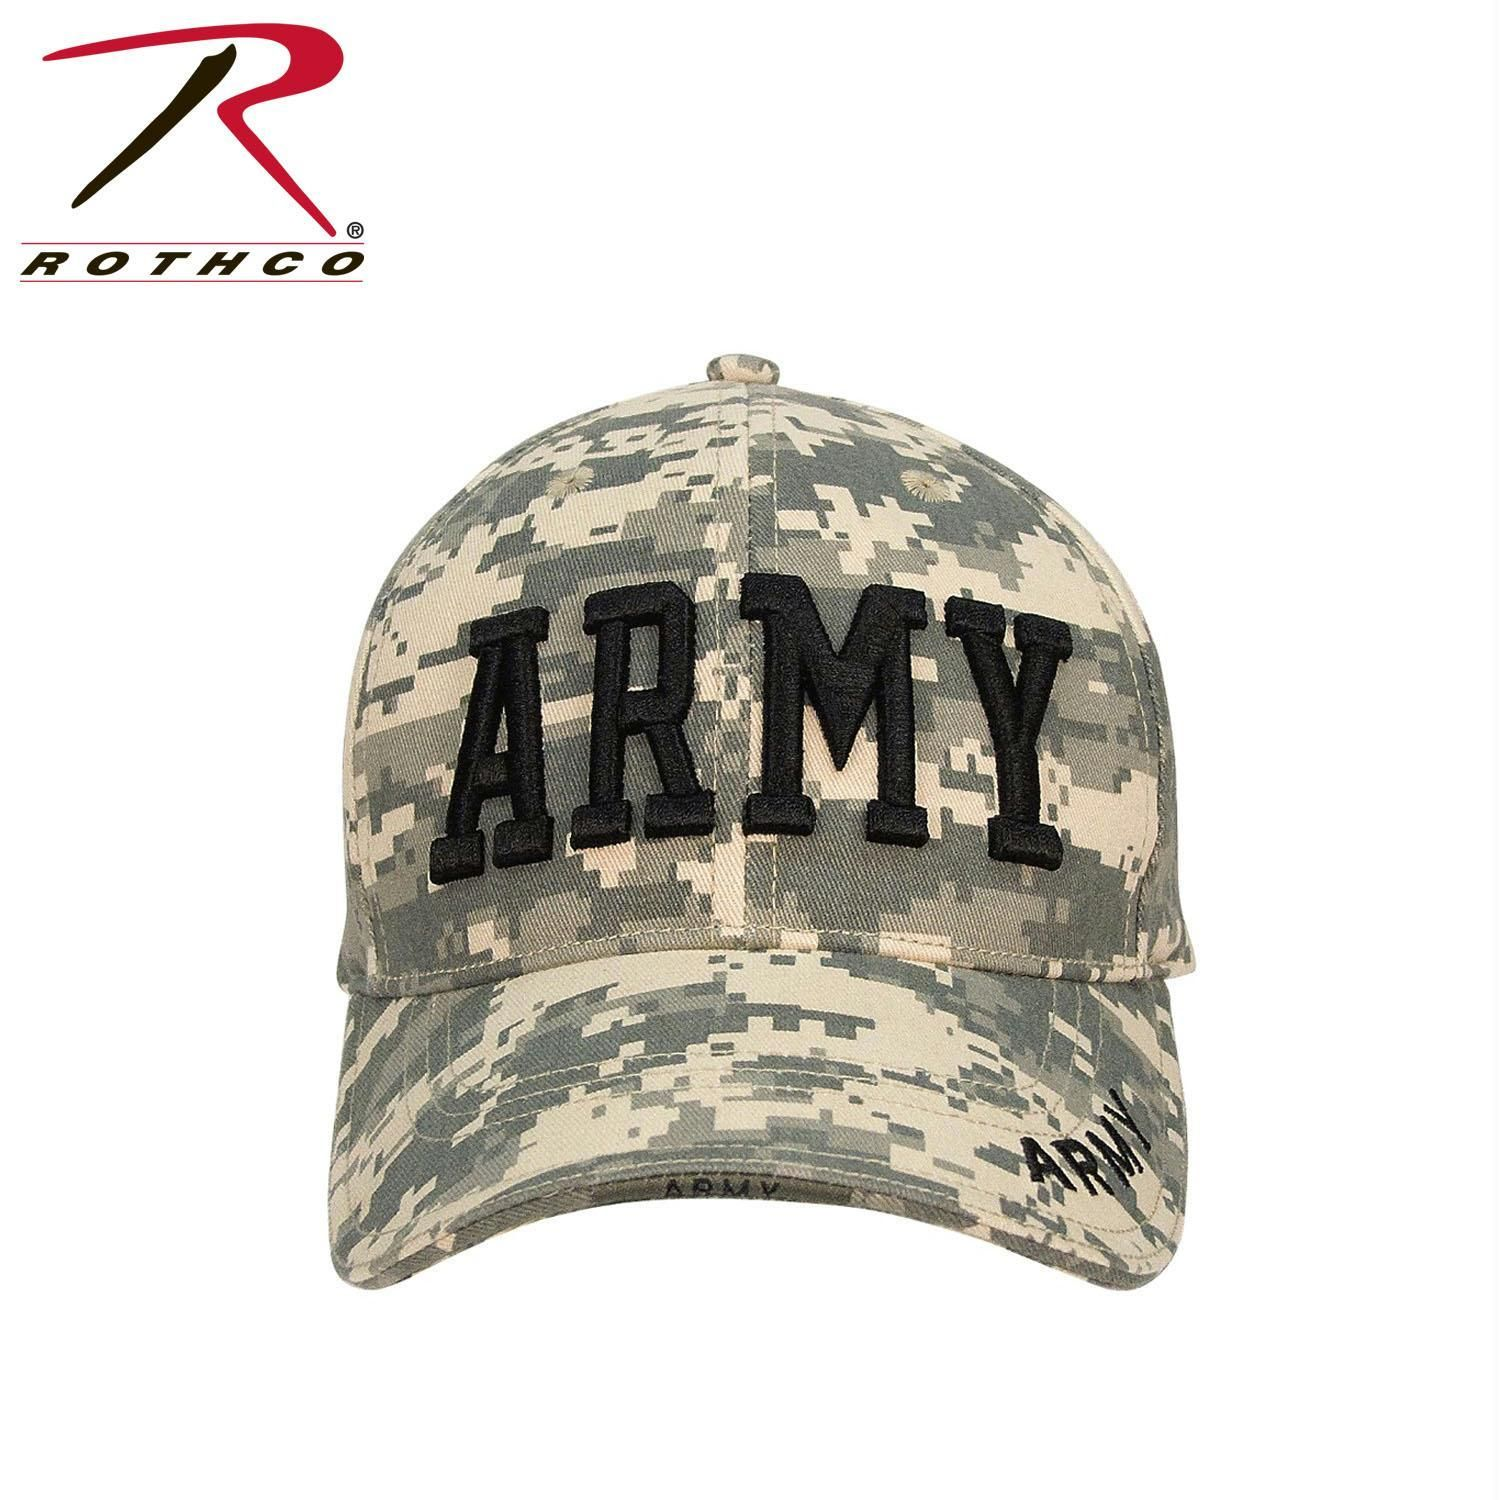 71c0fb38134 Rothco Deluxe Army Embroidered Low Profile Insignia Cap